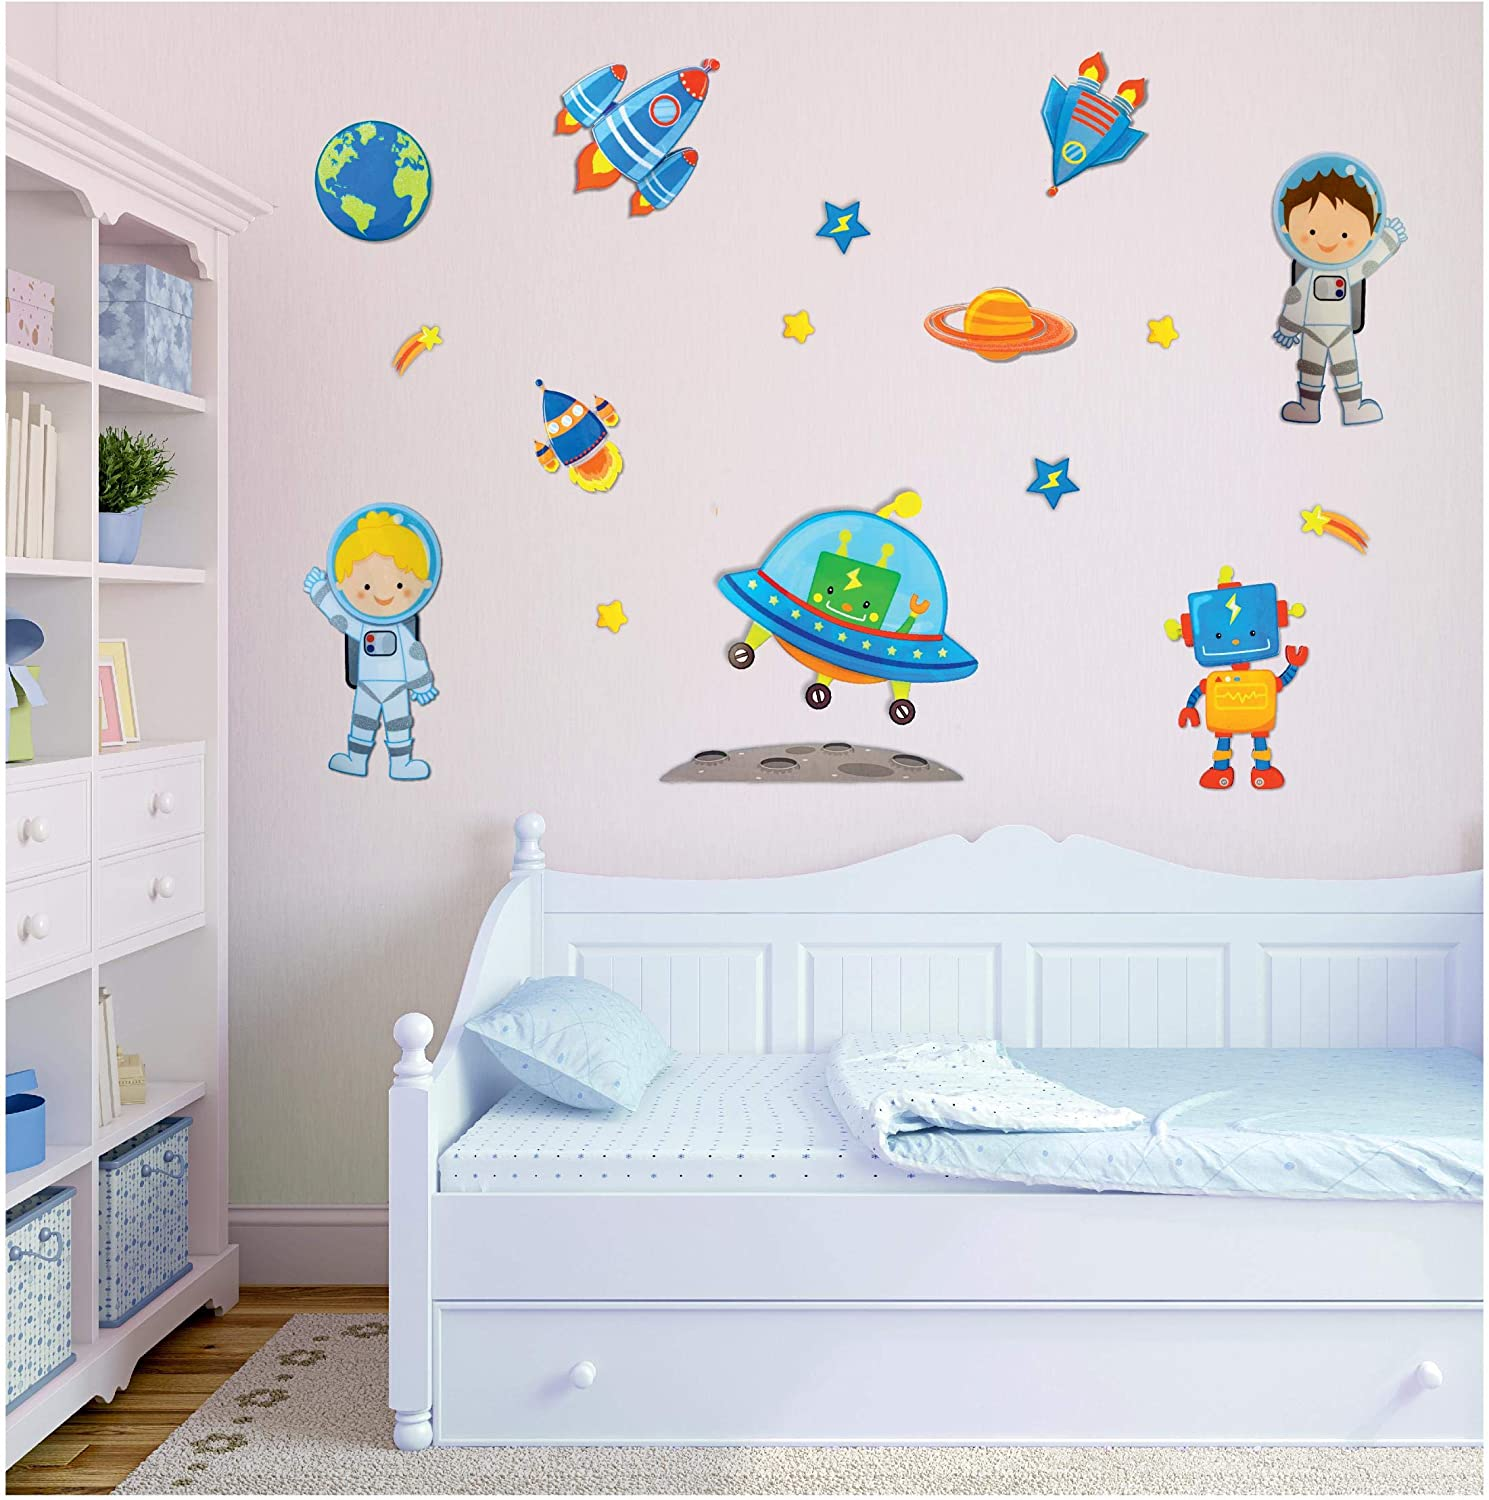 Amazon Com Space Astronaut Airplane Stickers 3d Wall Decals For Boys Bedroom Decor Set Of 10 Easy To Stick Removable Peel And Stick Kitchen Dining